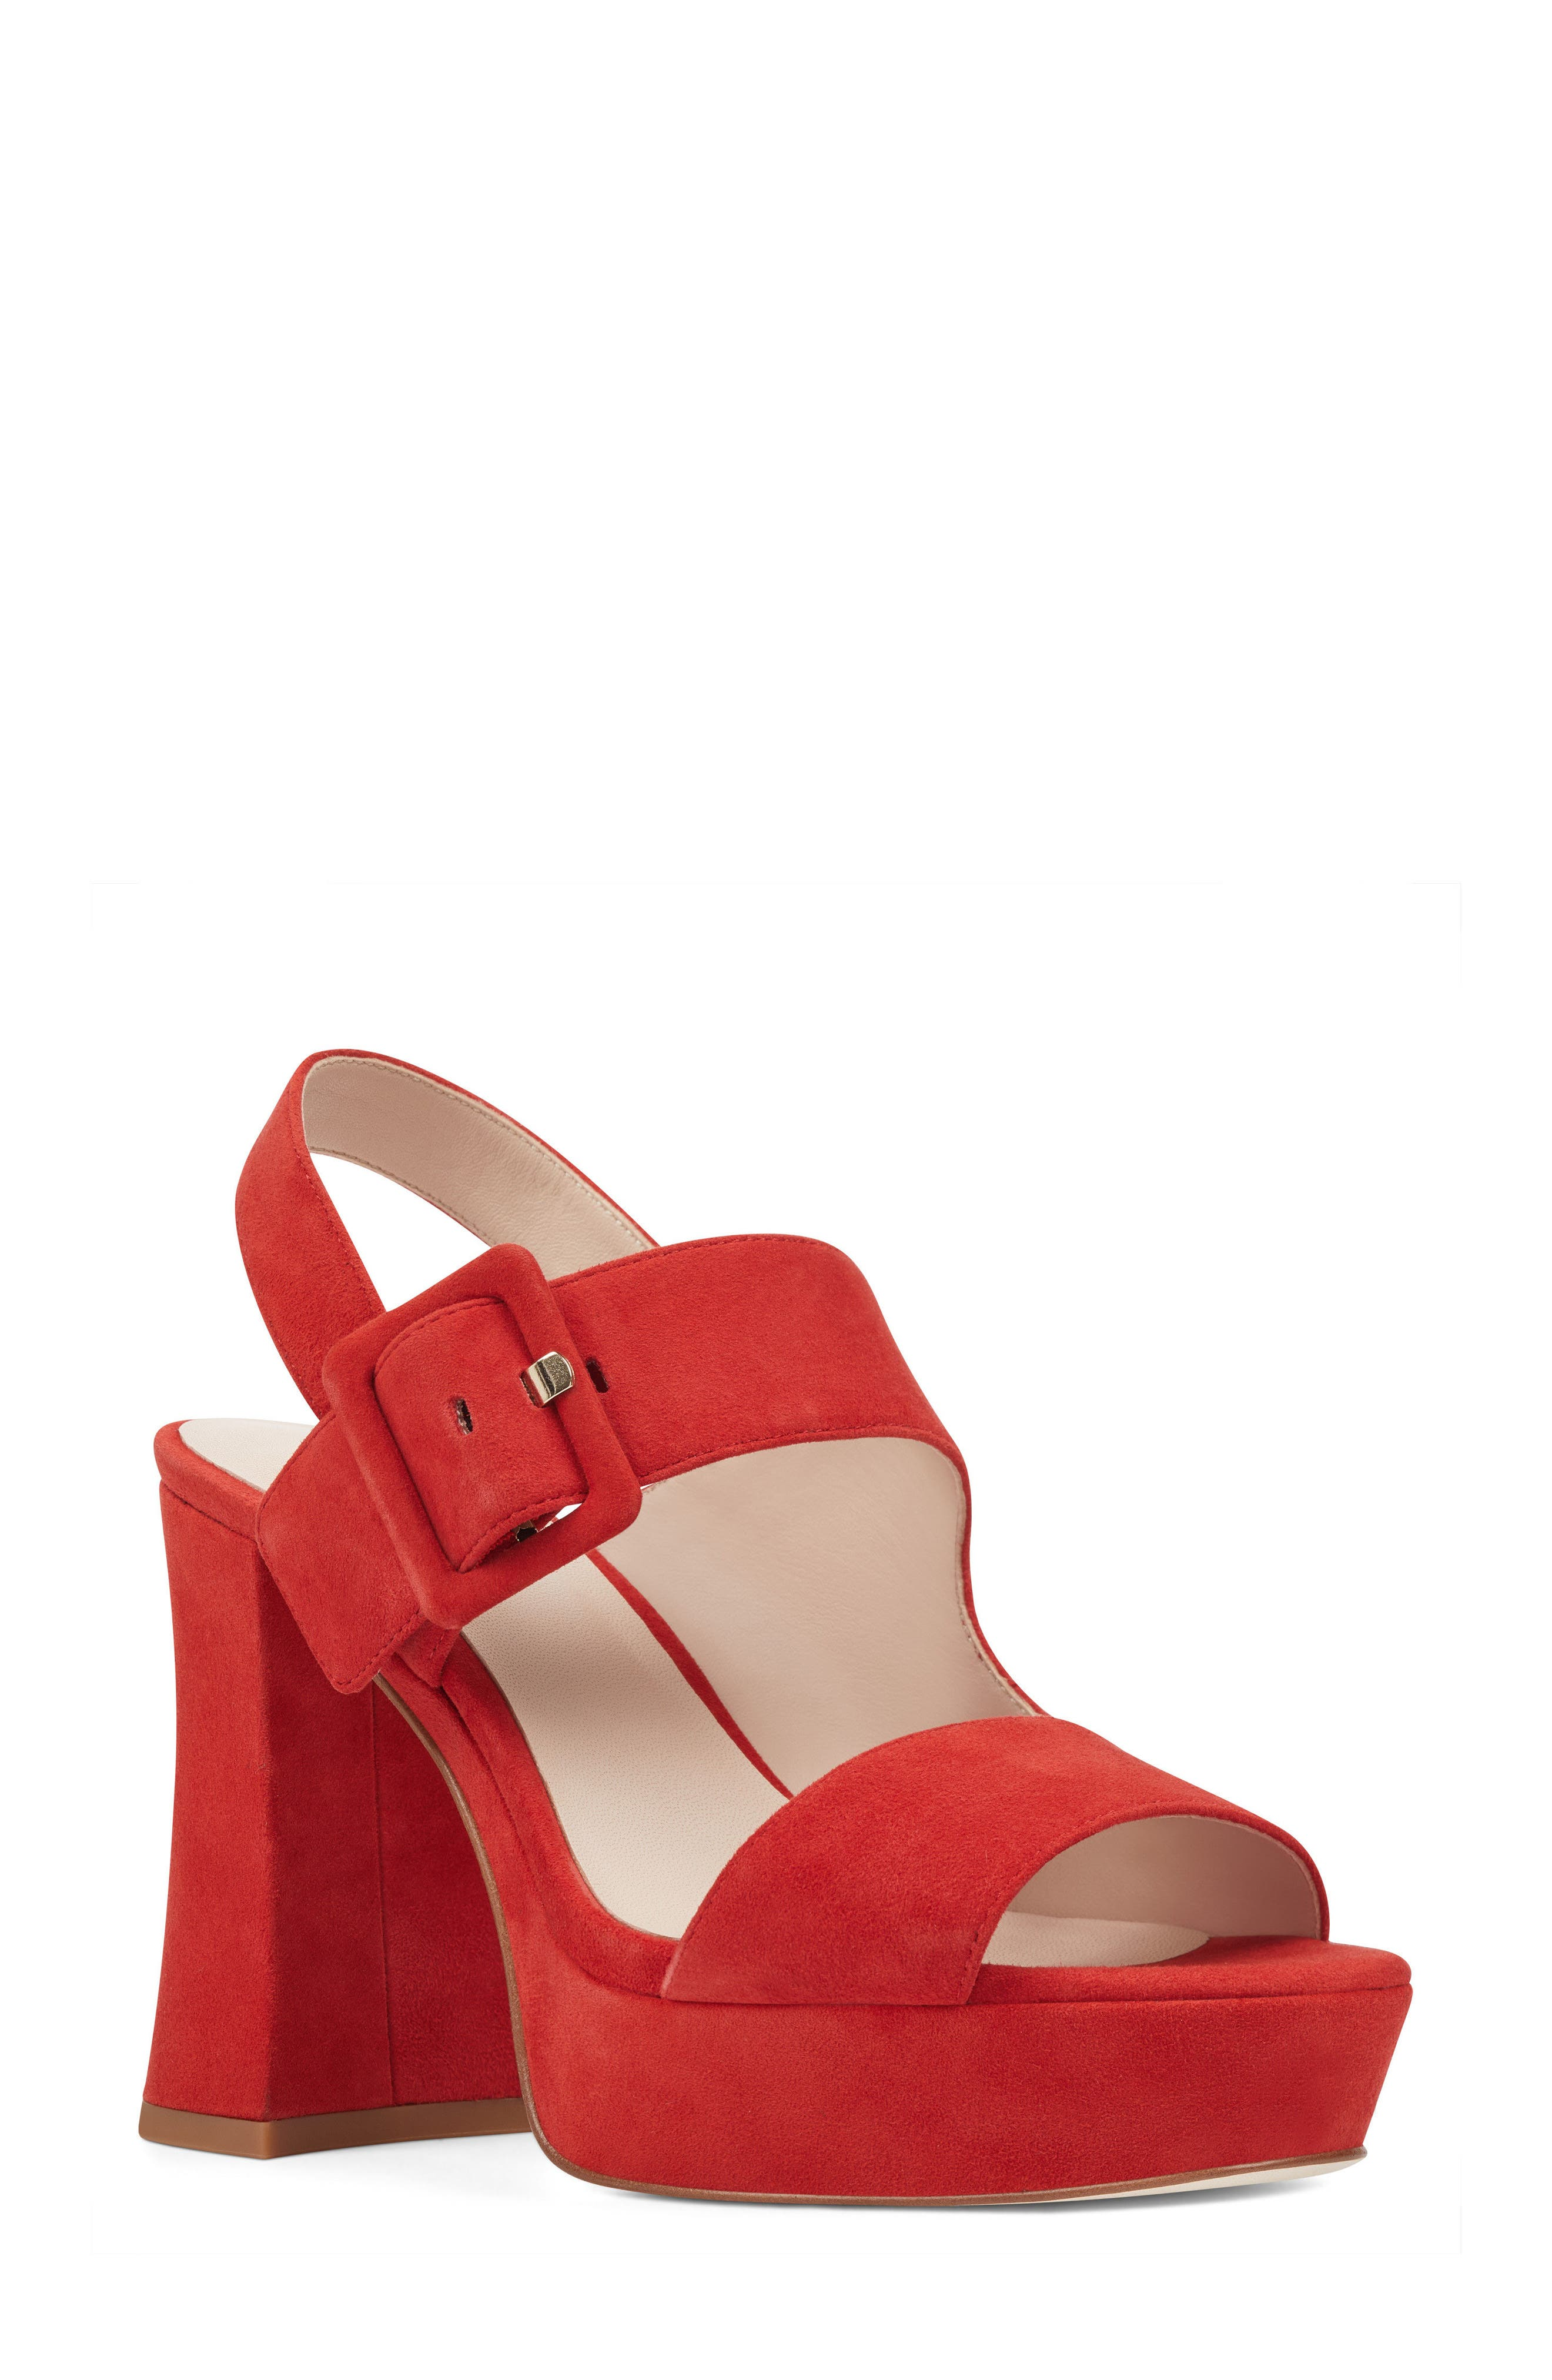 Nine West Lexine - 40th Anniversary Capsule Collection Platform Sandal (Women)